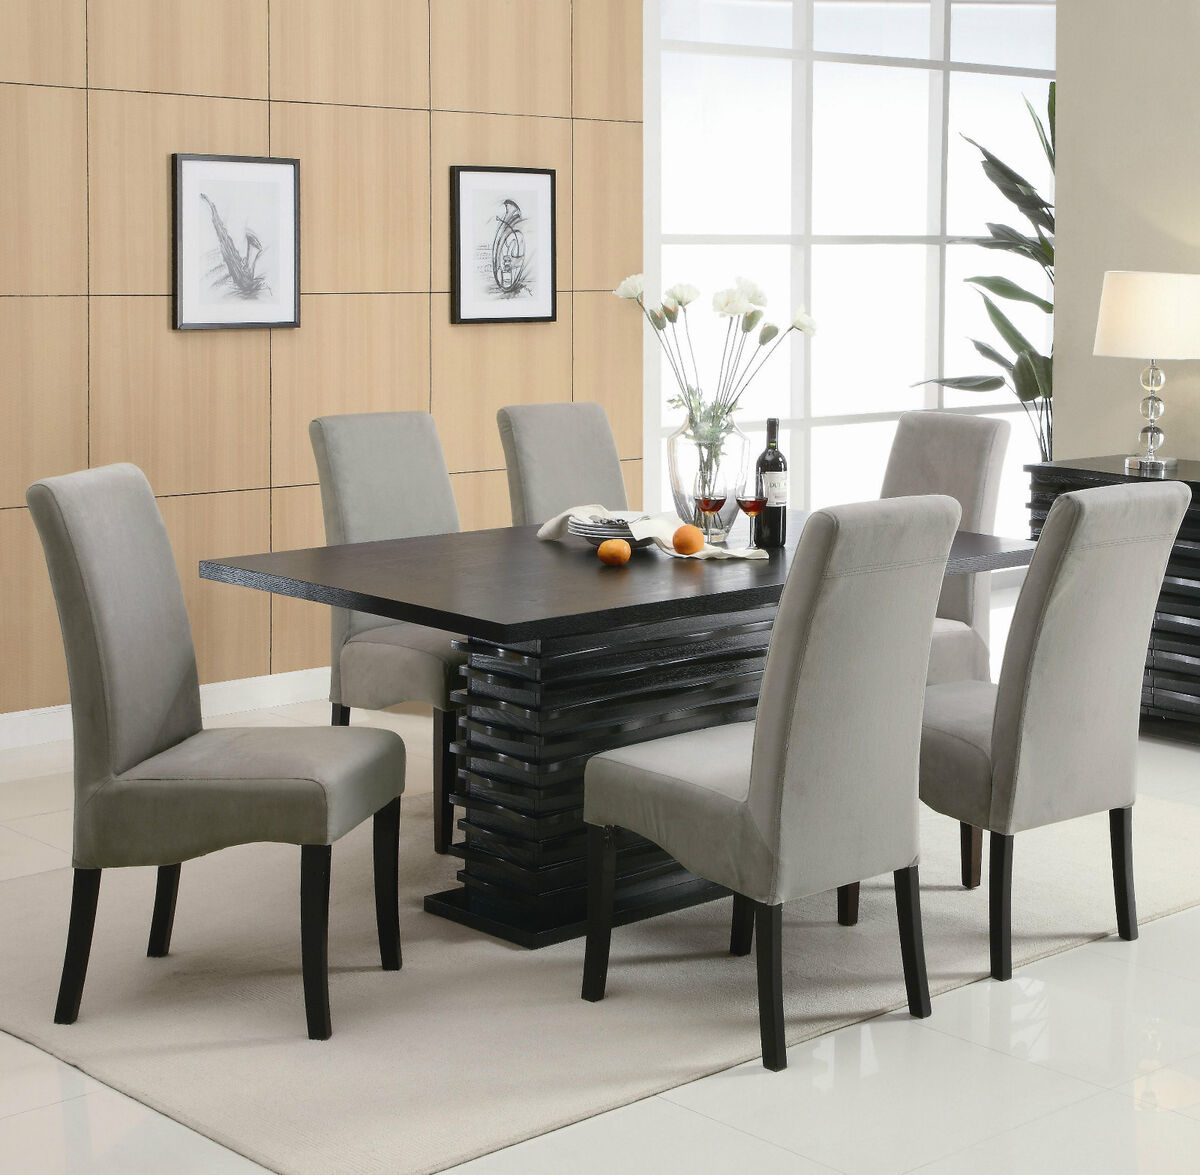 Dining table furniture contemporary chairs